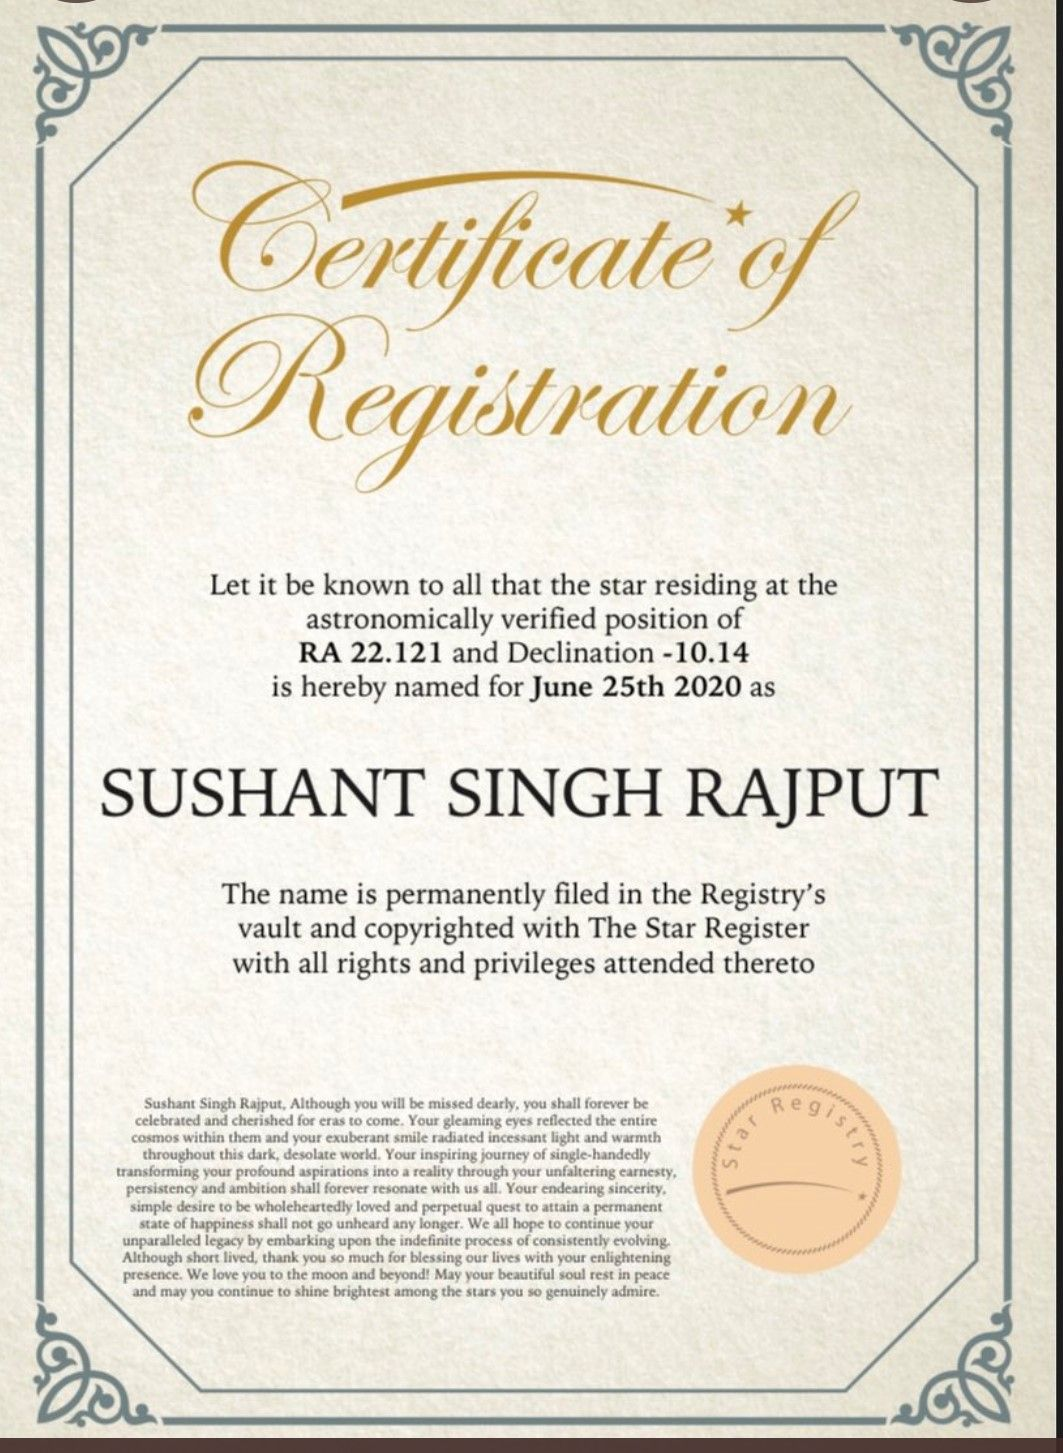 Has Any Star Been Named After Sushant Singh Rajput? in